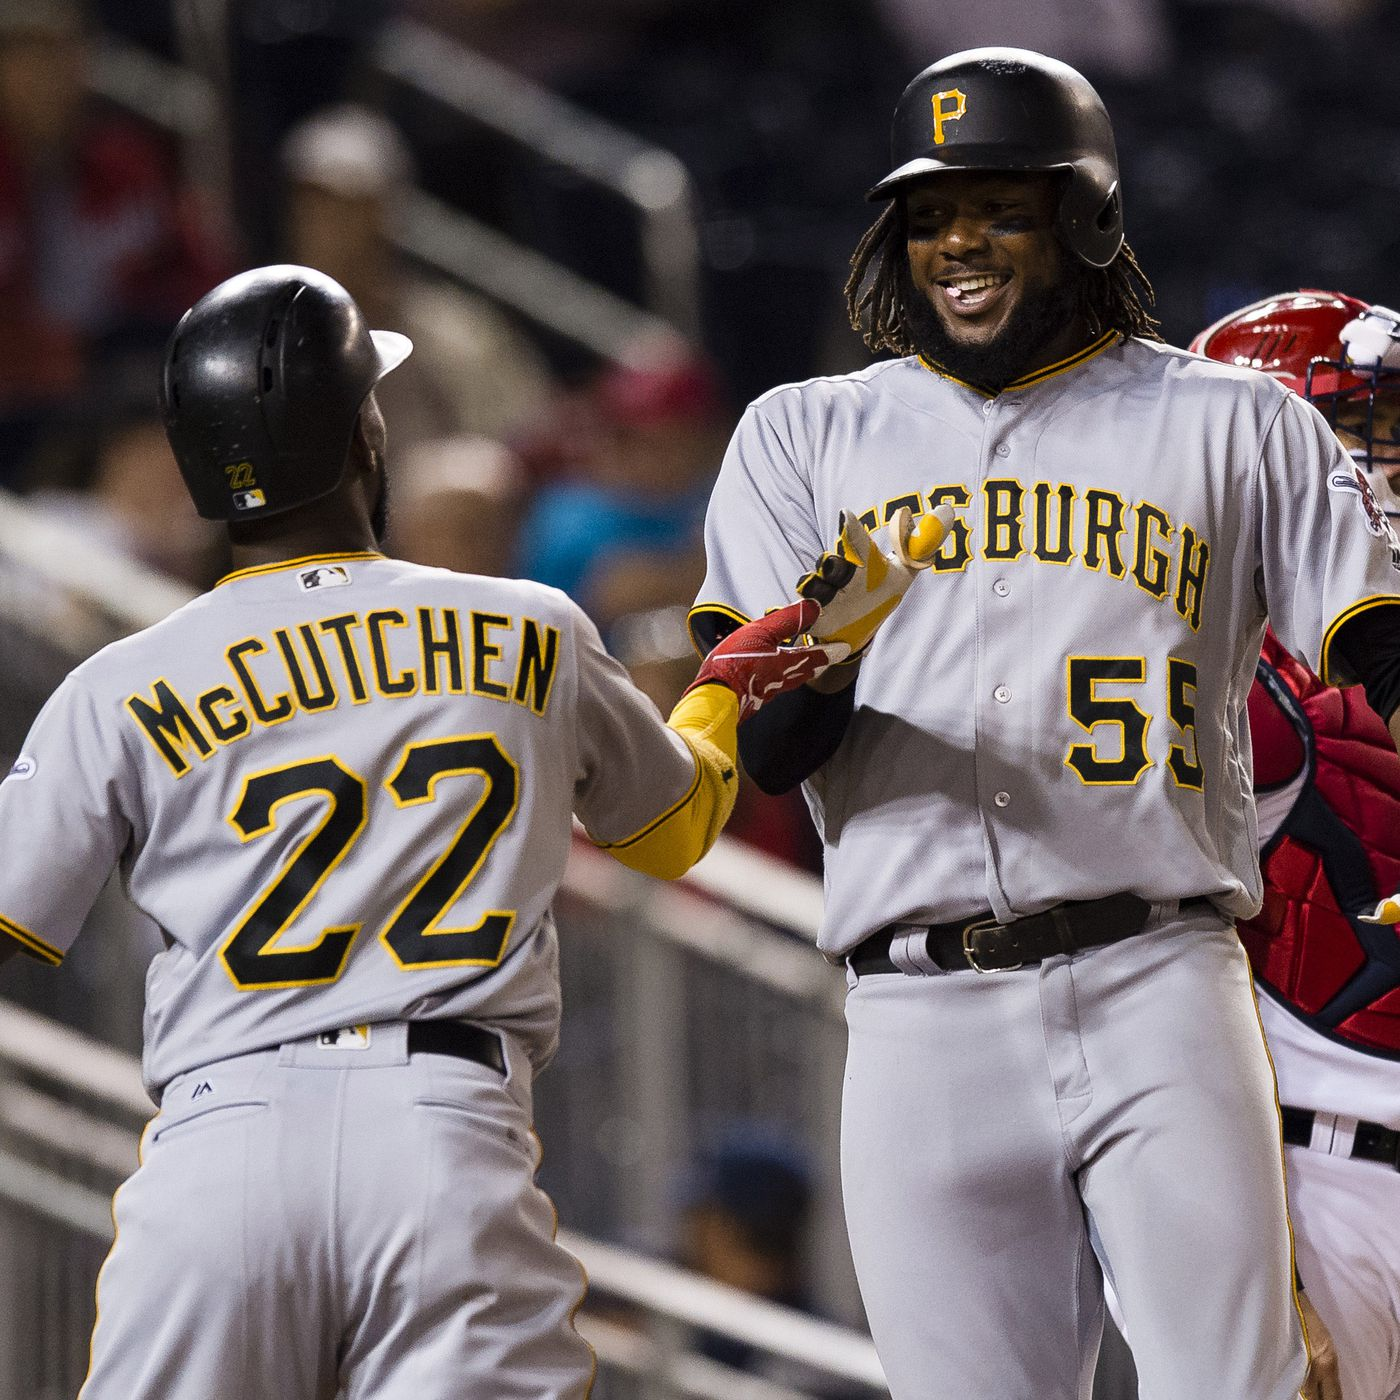 reputable site 56b09 a4e00 2017 MLB Offseason Preview: Pittsburgh Pirates - MLB Daily Dish